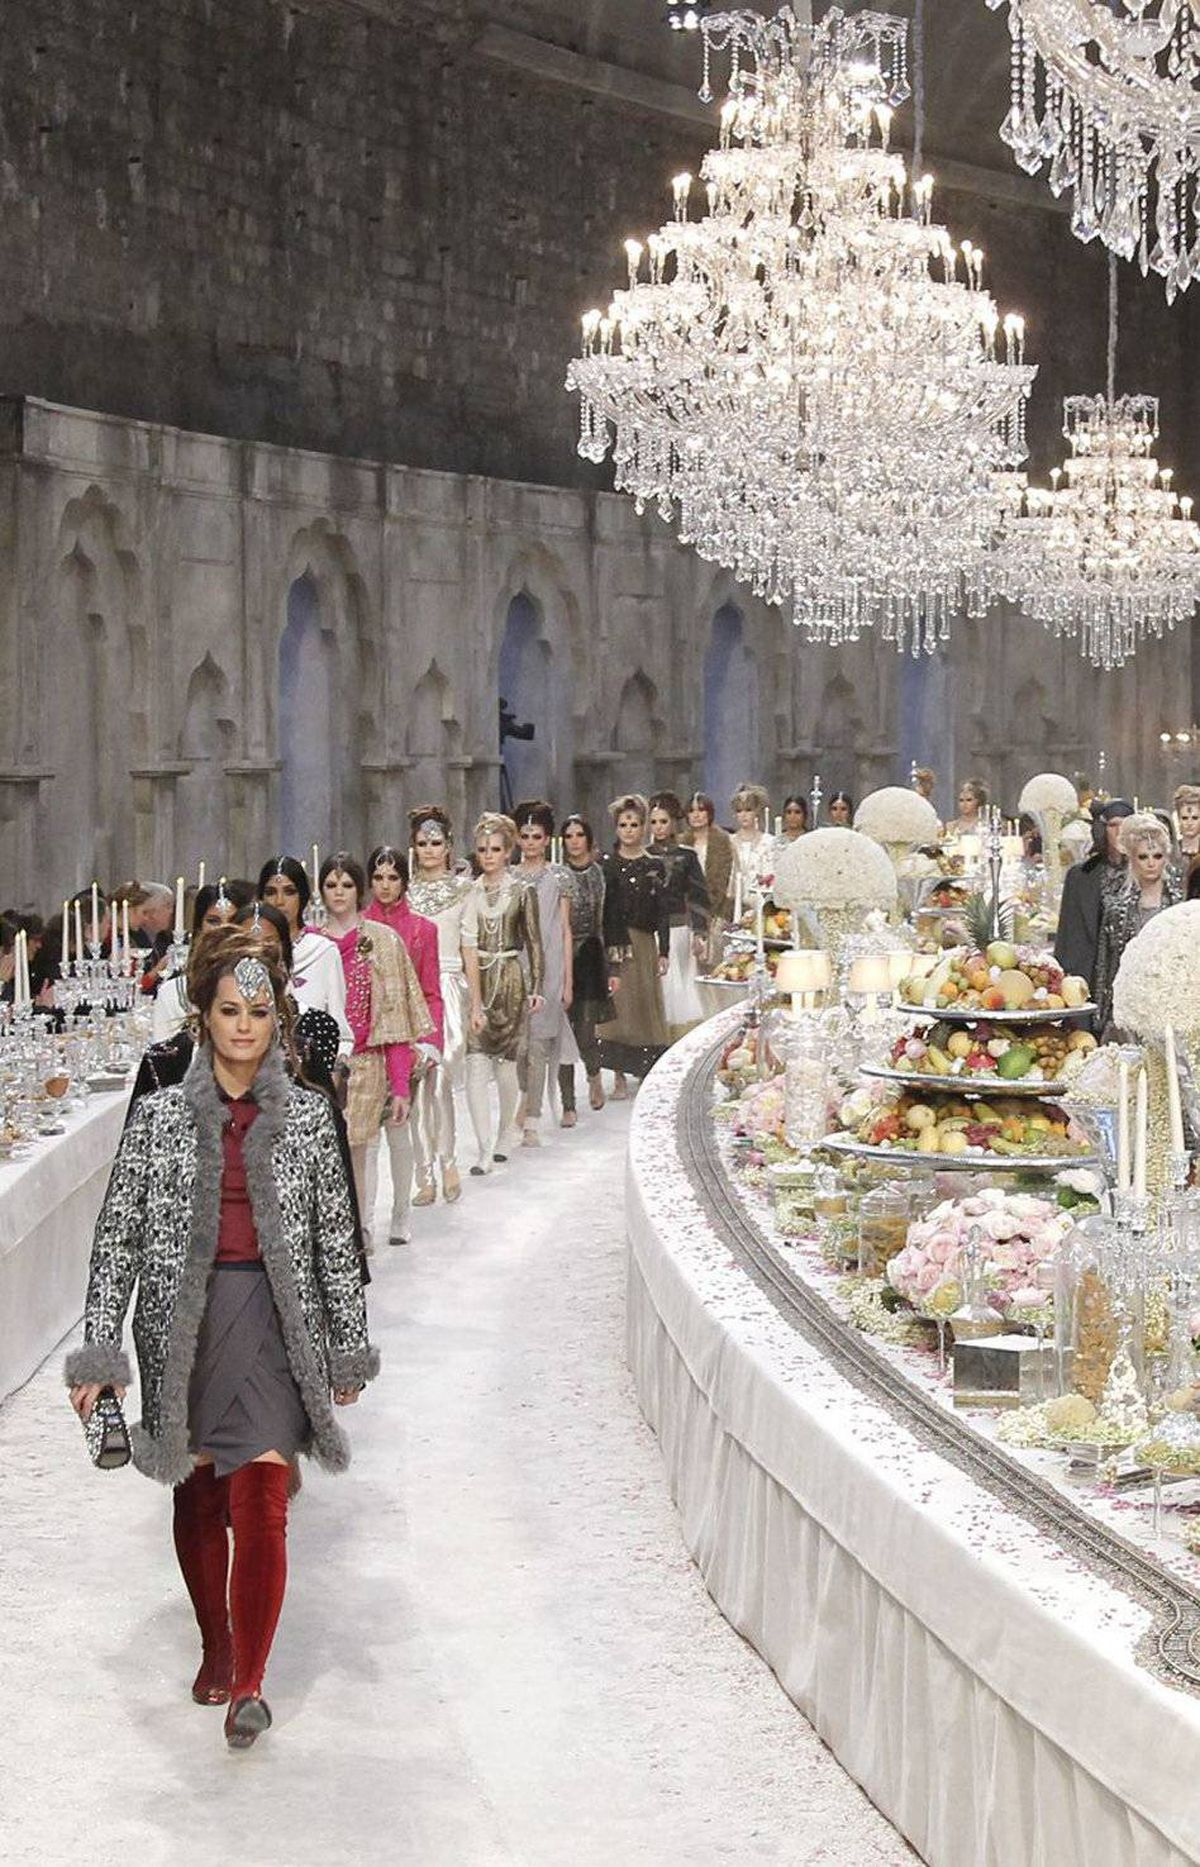 An upper hall of the Grand Palais in Paris was transformed into a dreamy banquet. Think traditional high tea with equal parts Bombay and Paris. Every single detail, from huge (the backdrop of aged, decorative arches) to tiny (gold foil dusted onto the fruit) is proof Chanel never goes halfway.